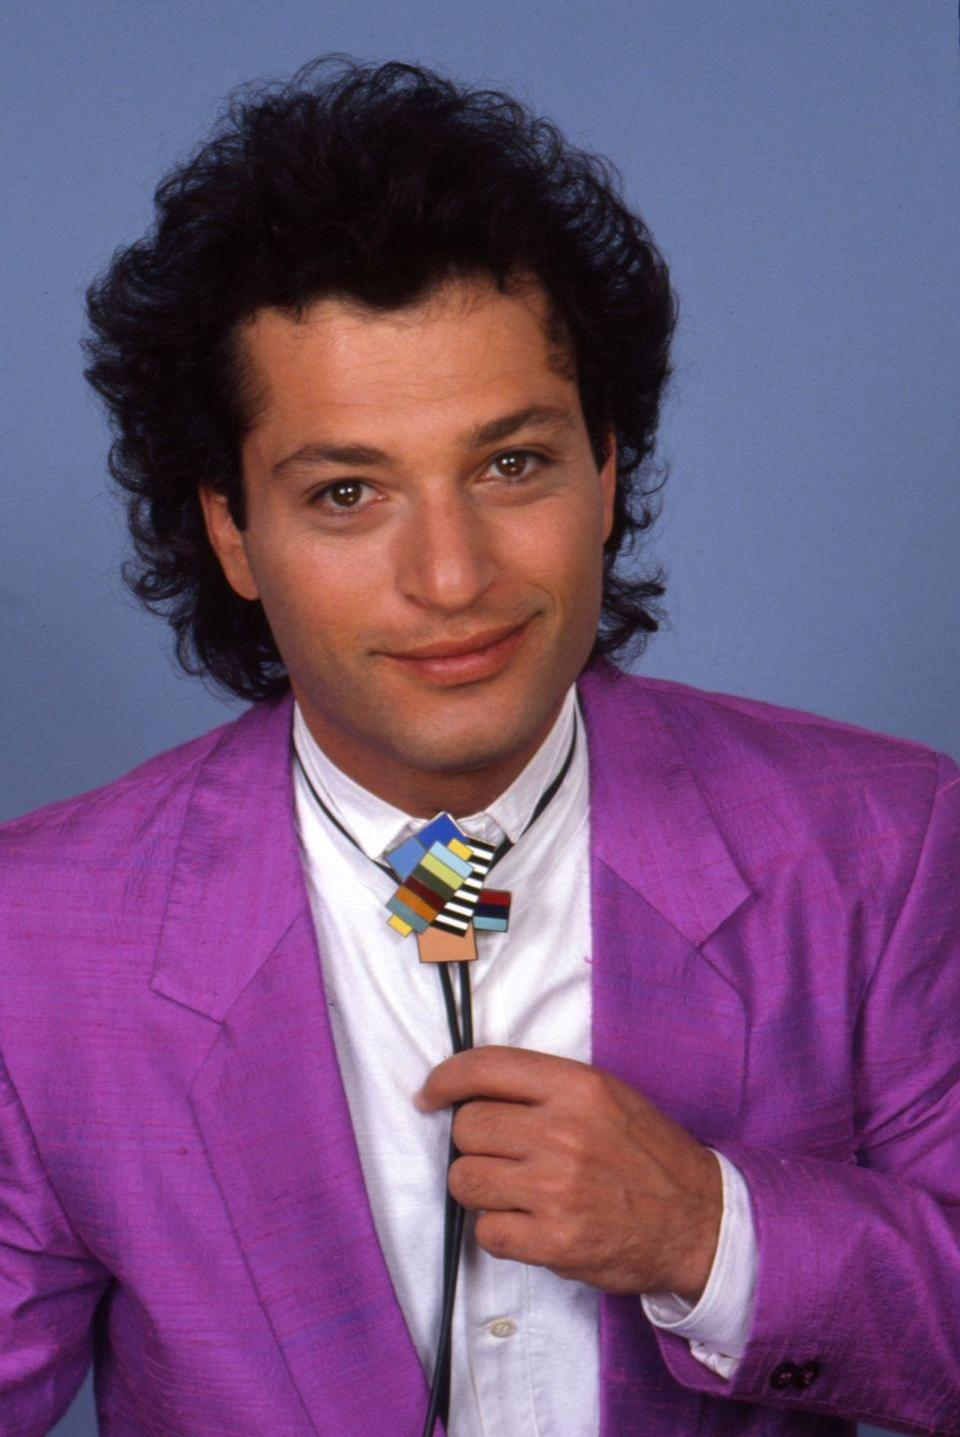 <p>It was the '80s, man. Not many had yet embraced the bald life and the mullet was still trending, as proven by the comedian's style of choice.</p>